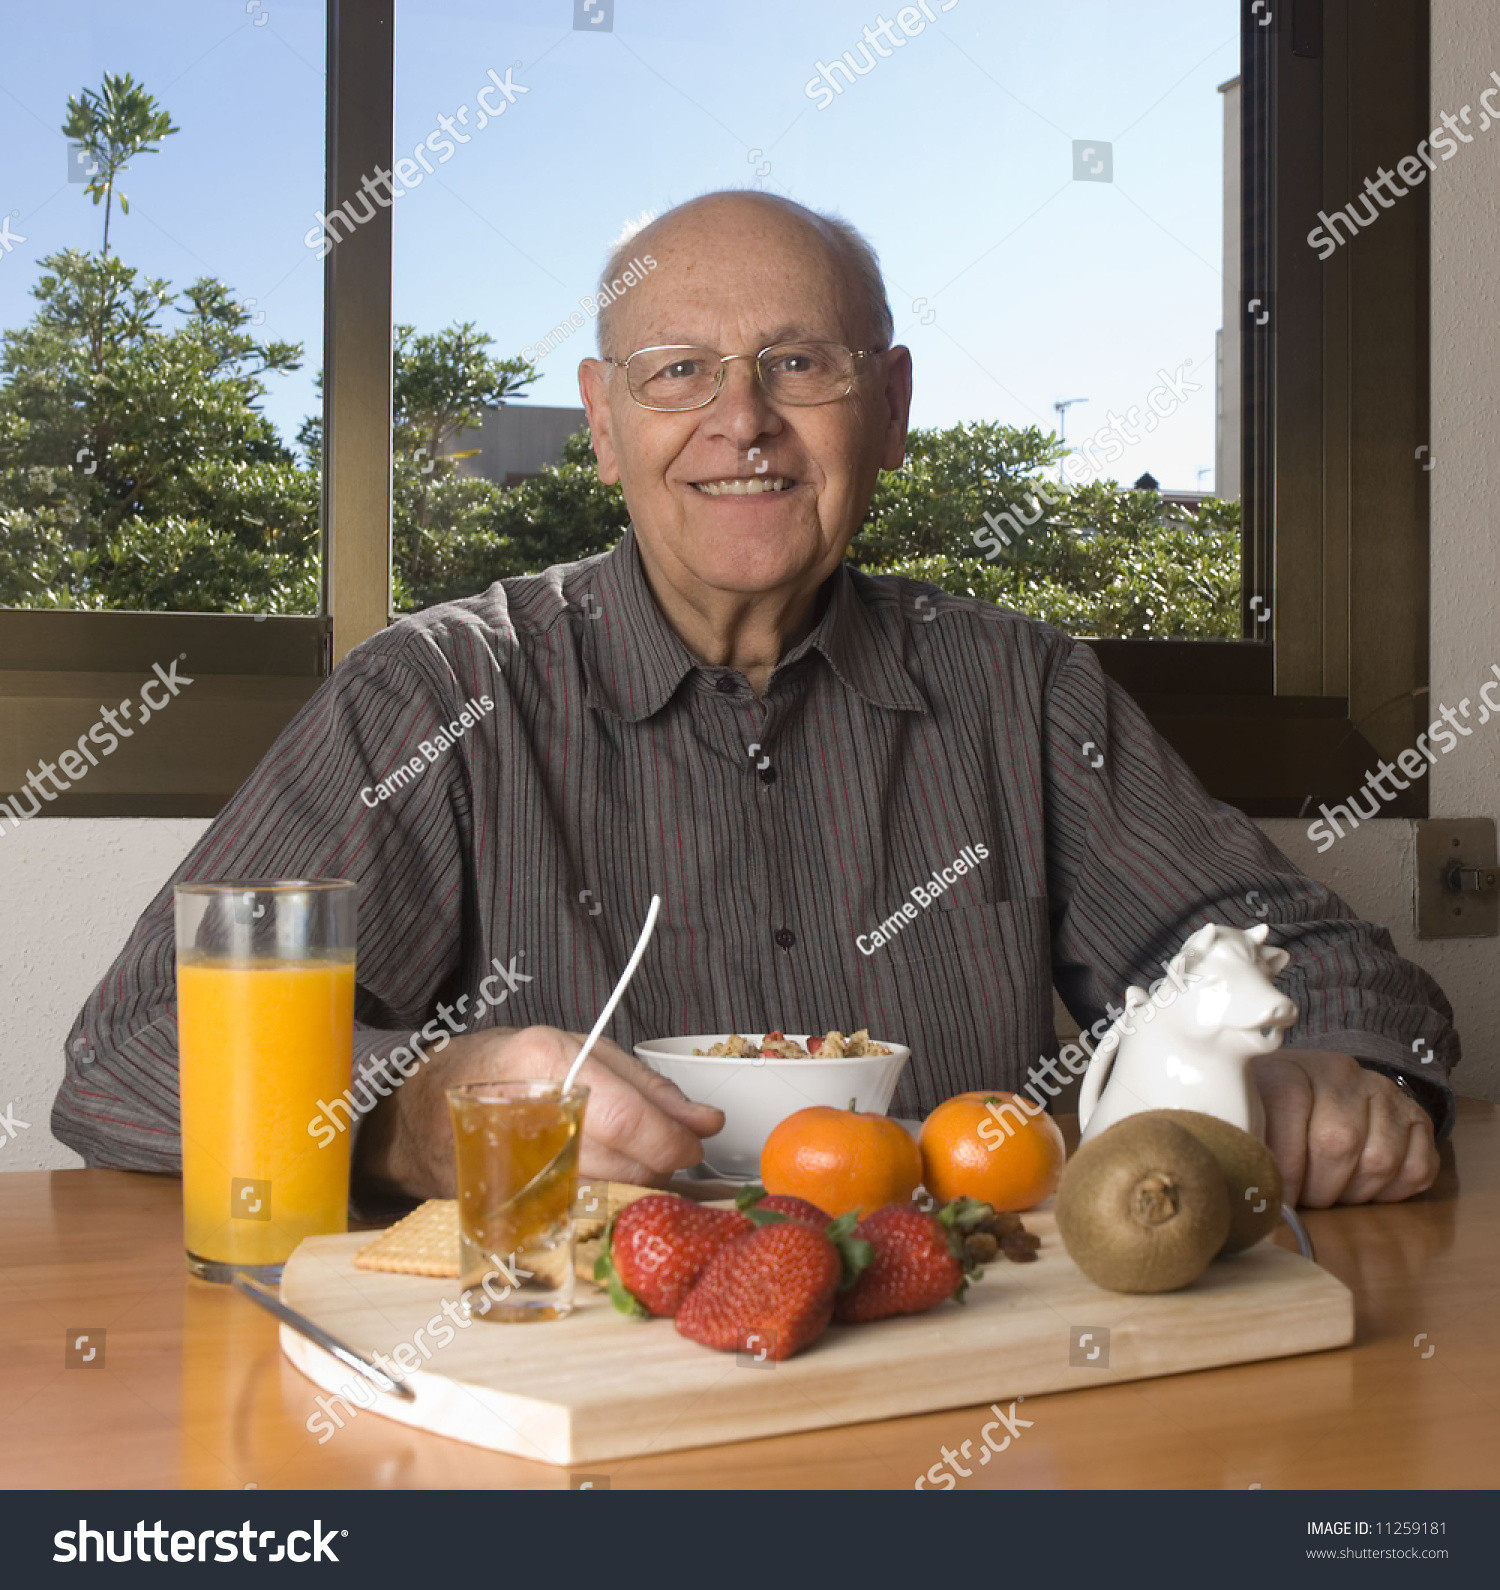 Healthy Breakfast At Home  Senior Man Having A Healthy Breakfast At Home Stock